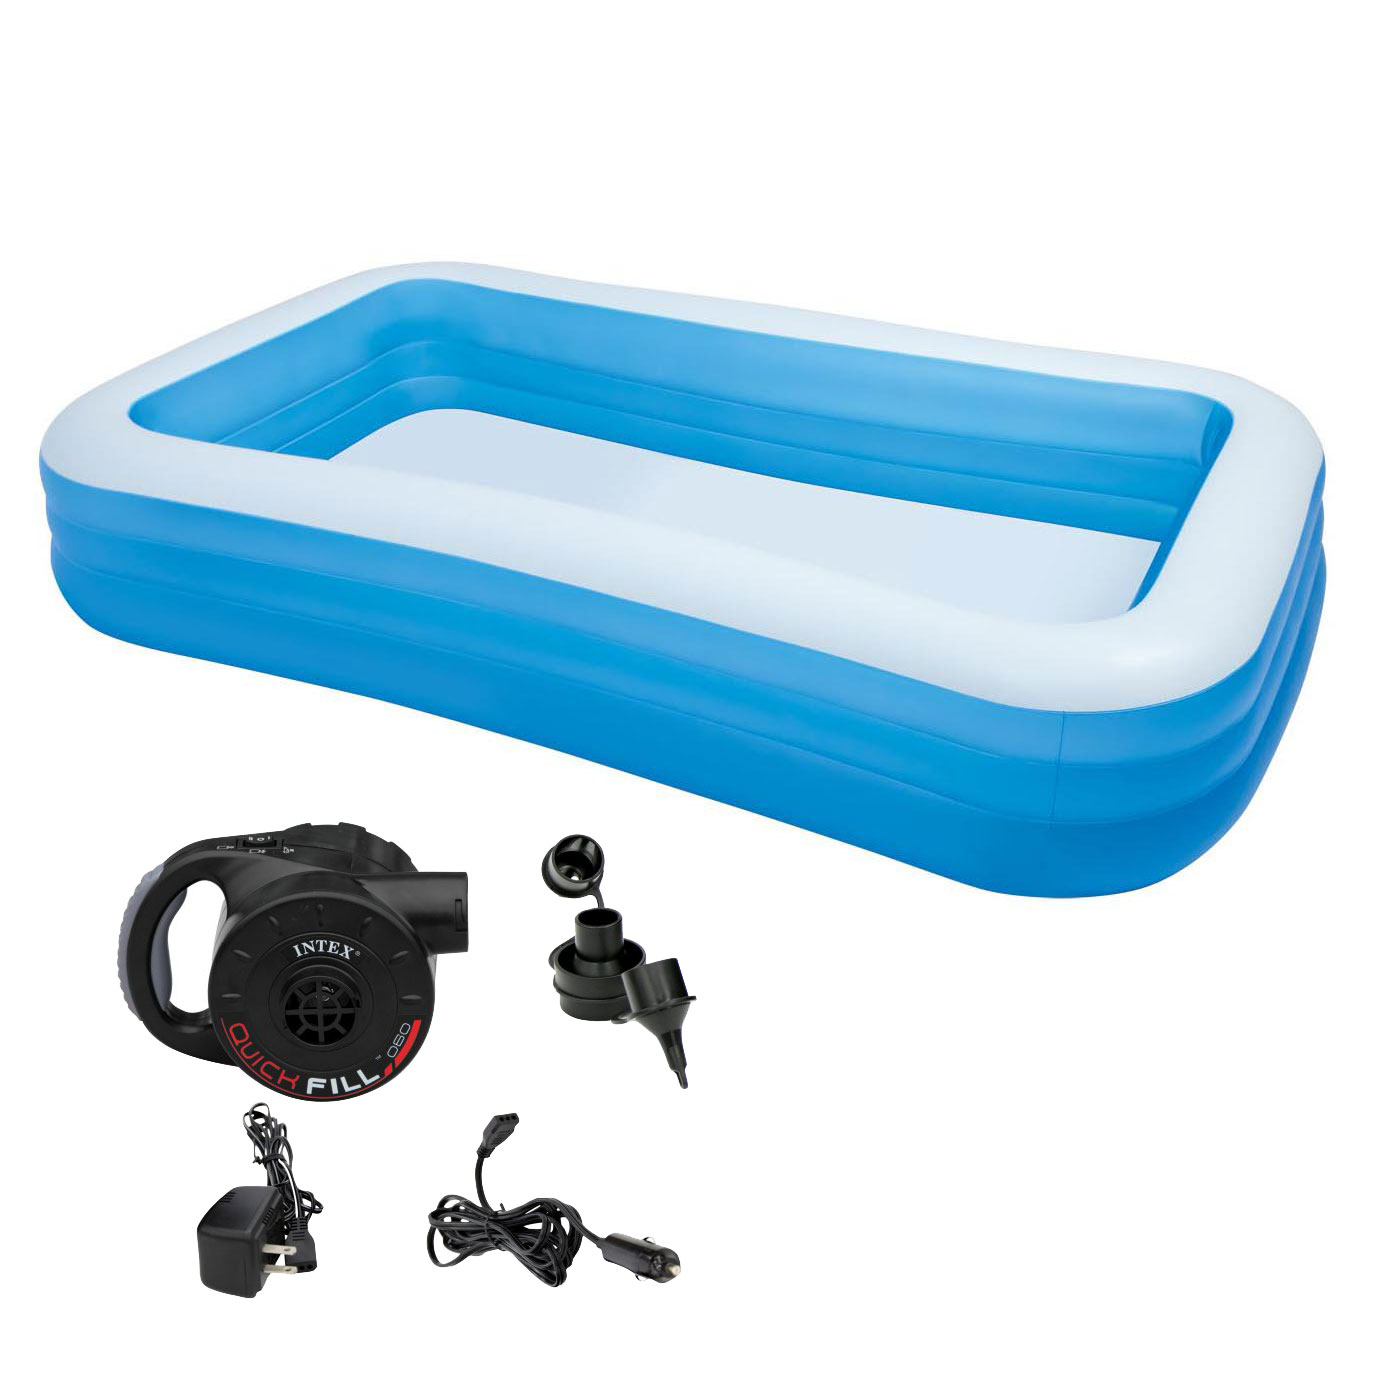 Intex Swim Center Family 72 x 120 Inch Swimming Pool & Battery Powered Air Pump